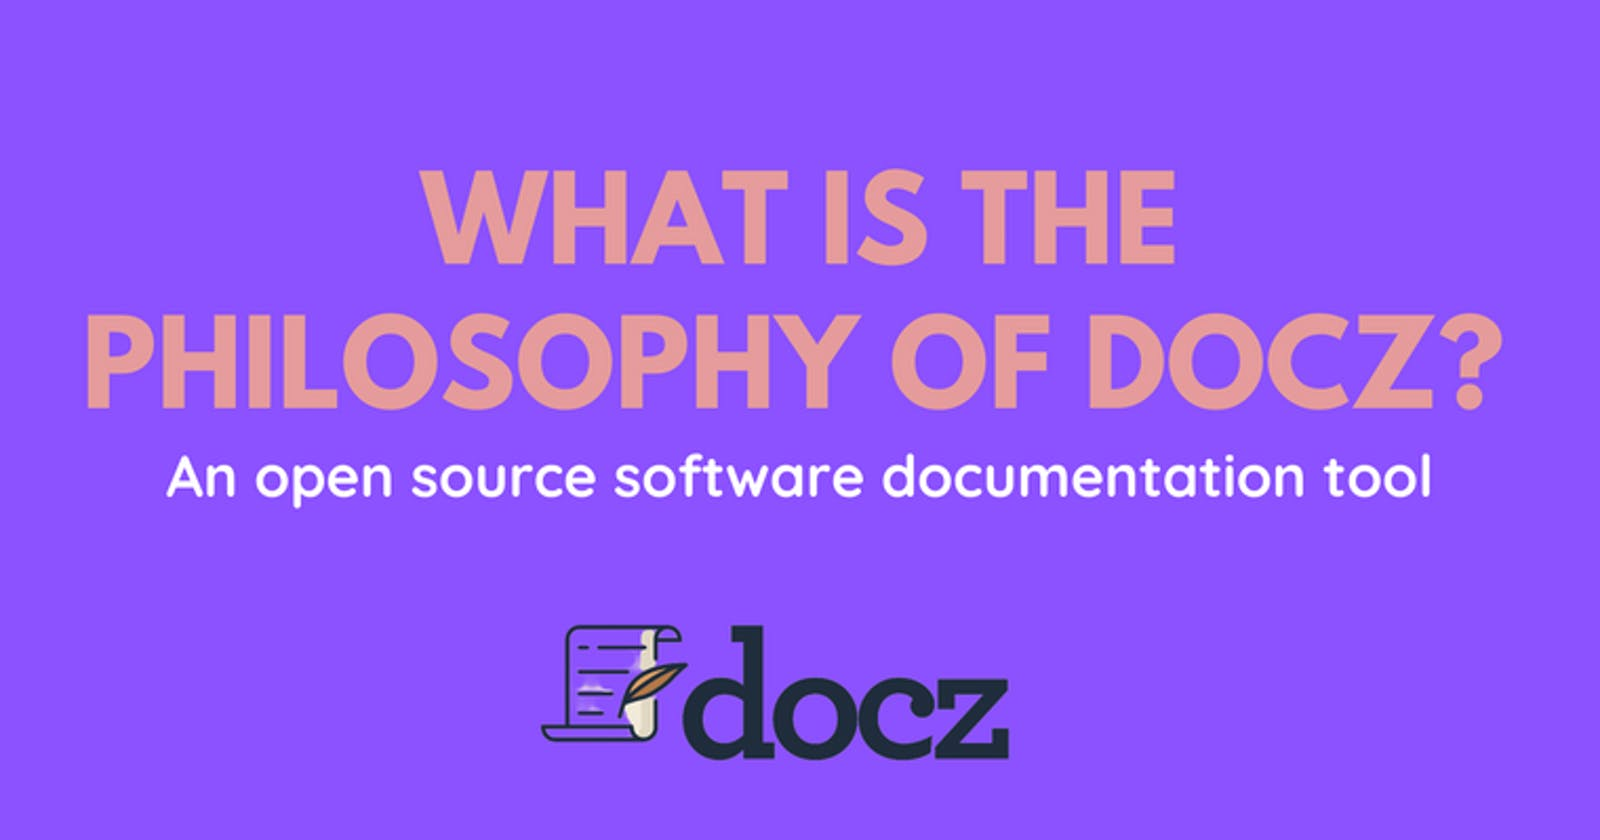 What is the philosophy of Docz - an open source software documentation tool?